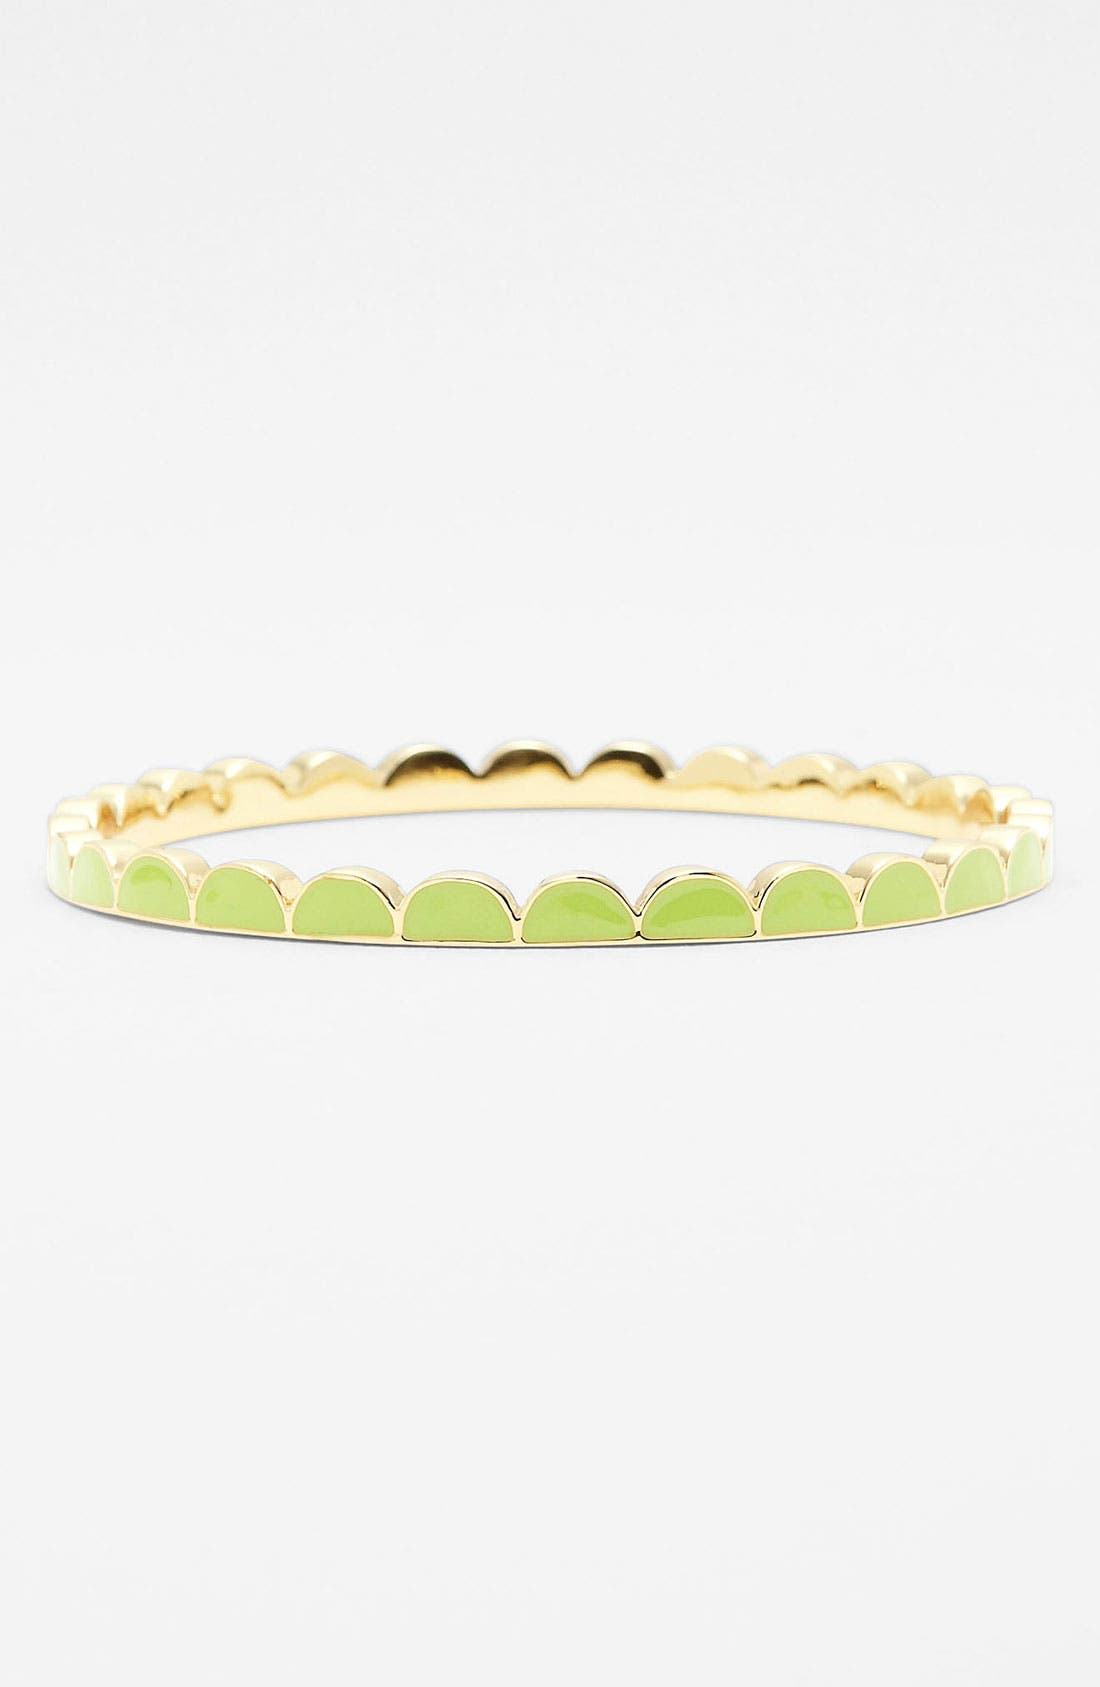 Alternate Image 1 Selected - kate spade new york 'scallop' bangle